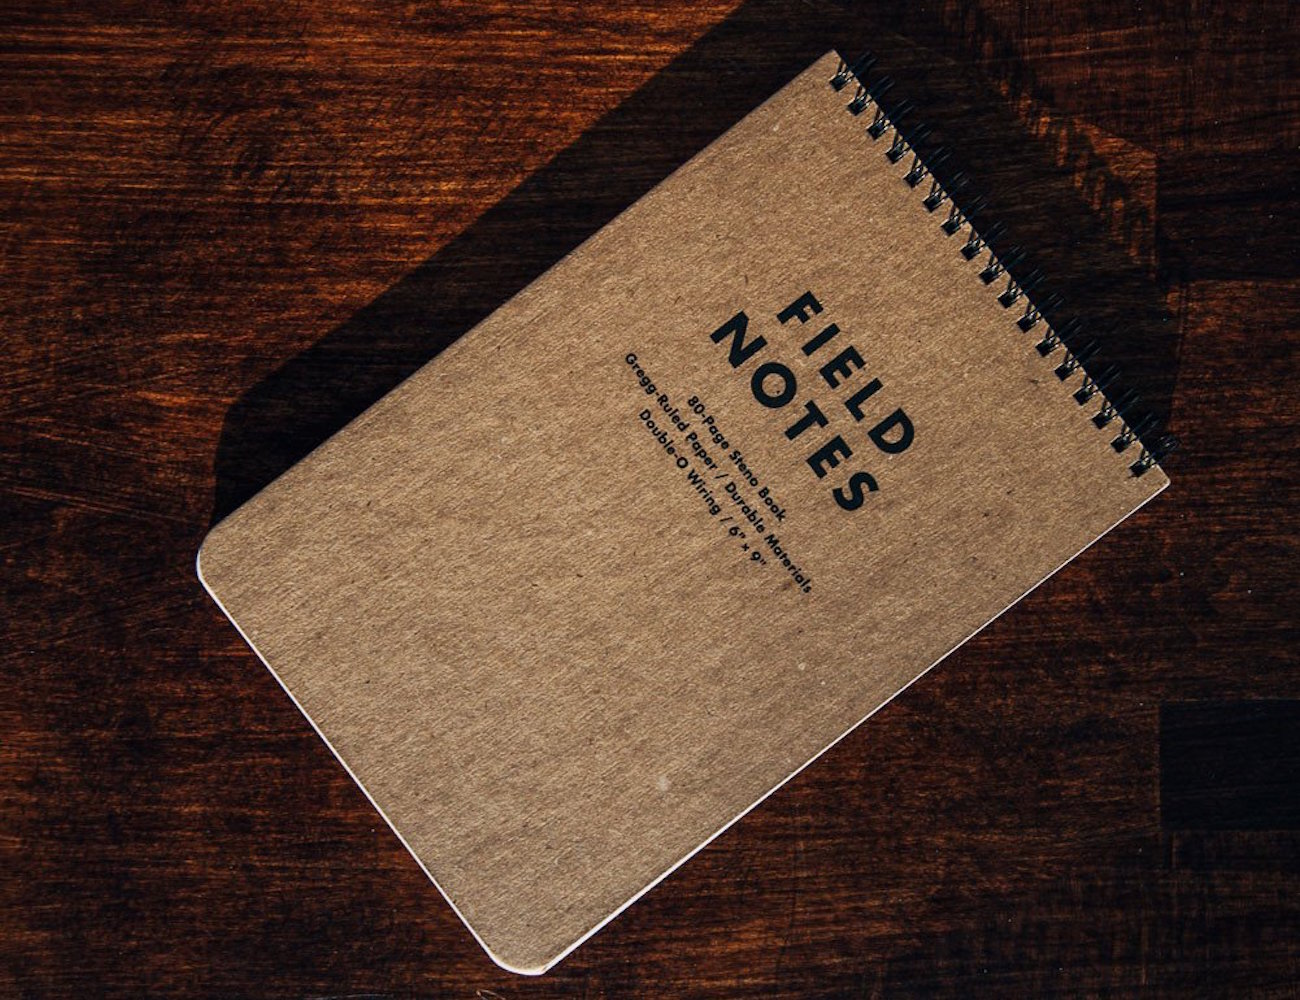 Field Notes Steno Book by Lord and Lady Co. loading=